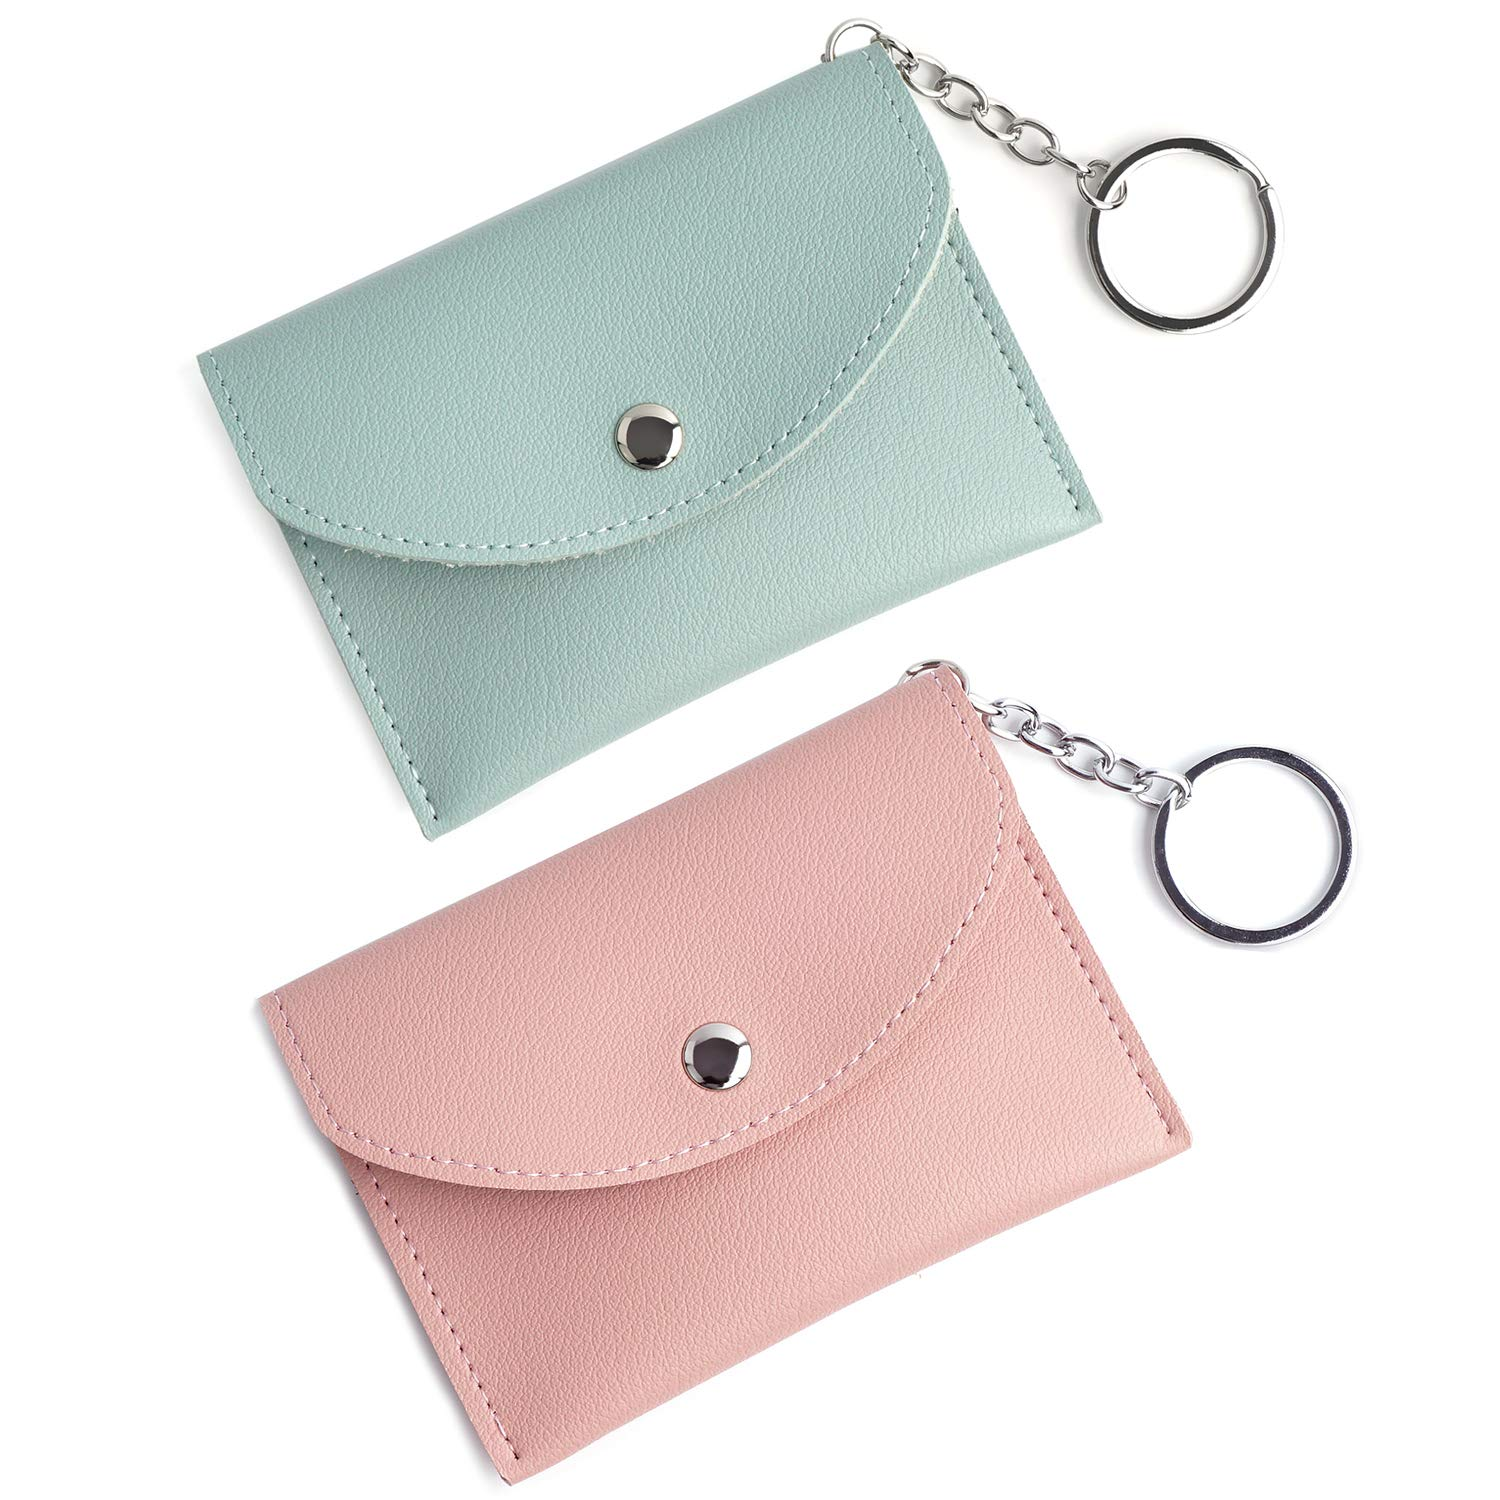 Women's Mini Coin Purse Pouch Change Purse Card Holder Wallet with Key Ring 2 Pack by FALE